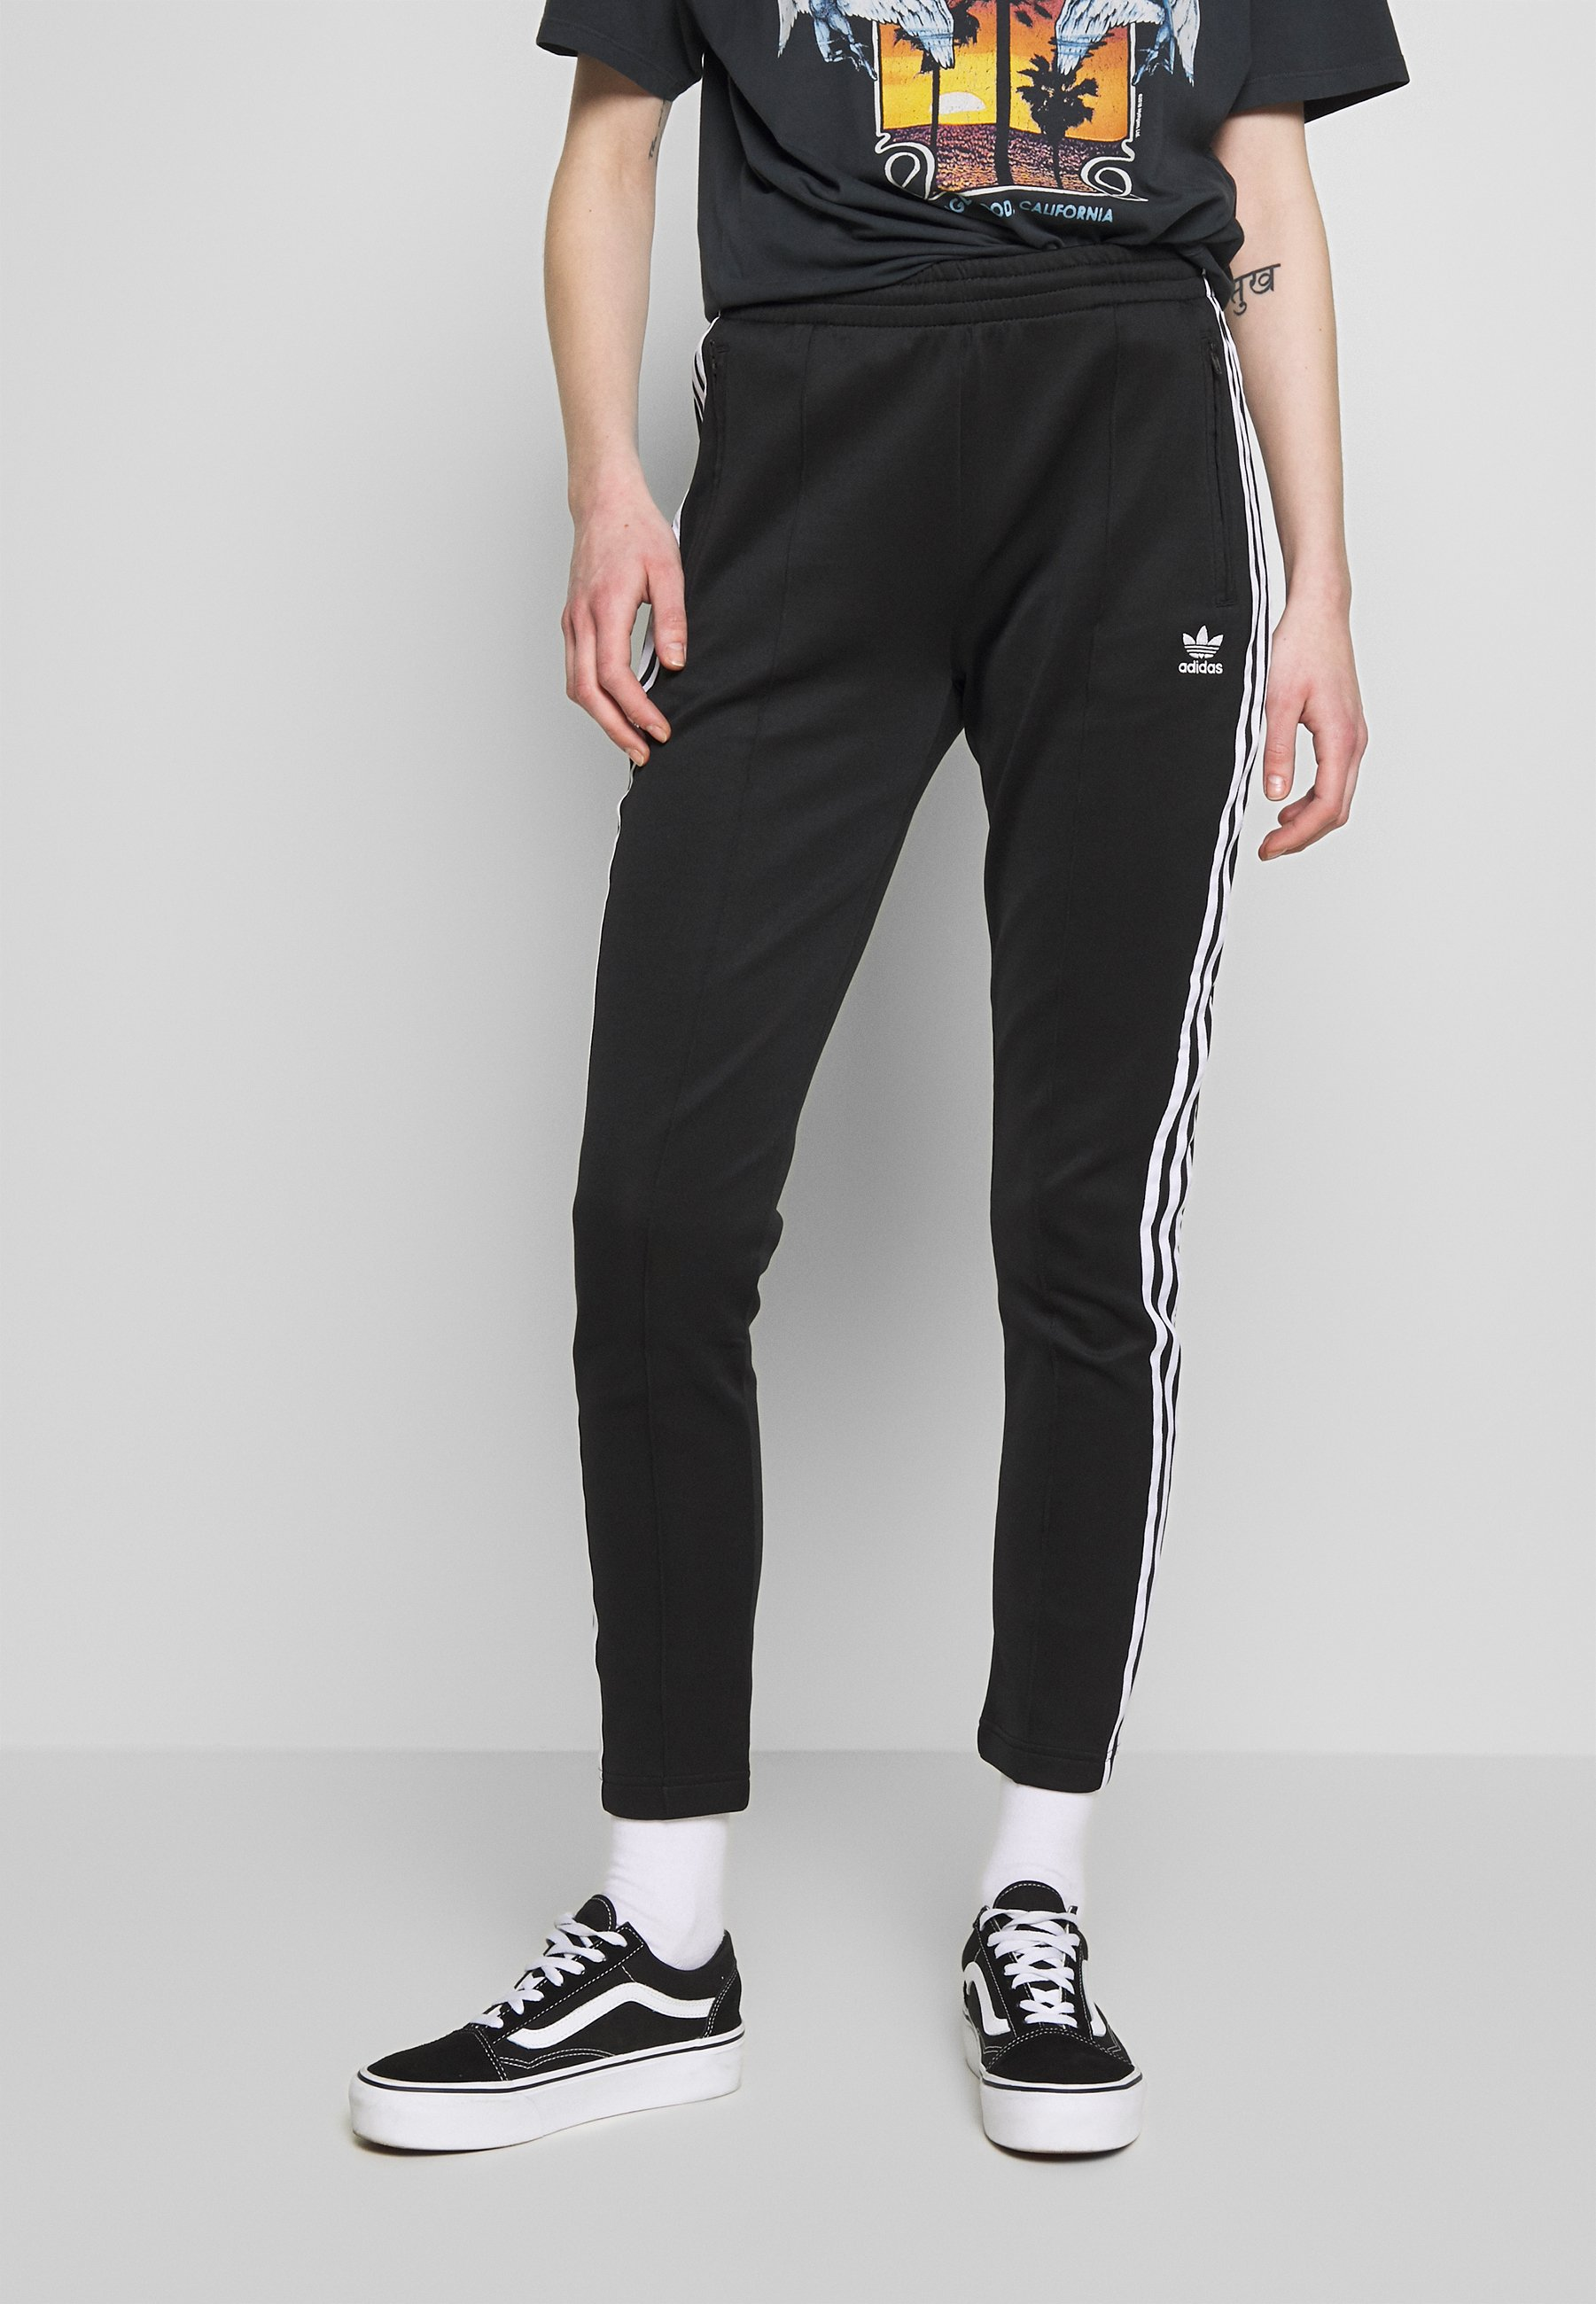 Converger Esplendor exégesis  adidas Originals SUPERSTAR SUPER GIRL ADICOLOR TRACK PANTS - Pantalon de  survêtement - black/white/noir - ZALANDO.FR